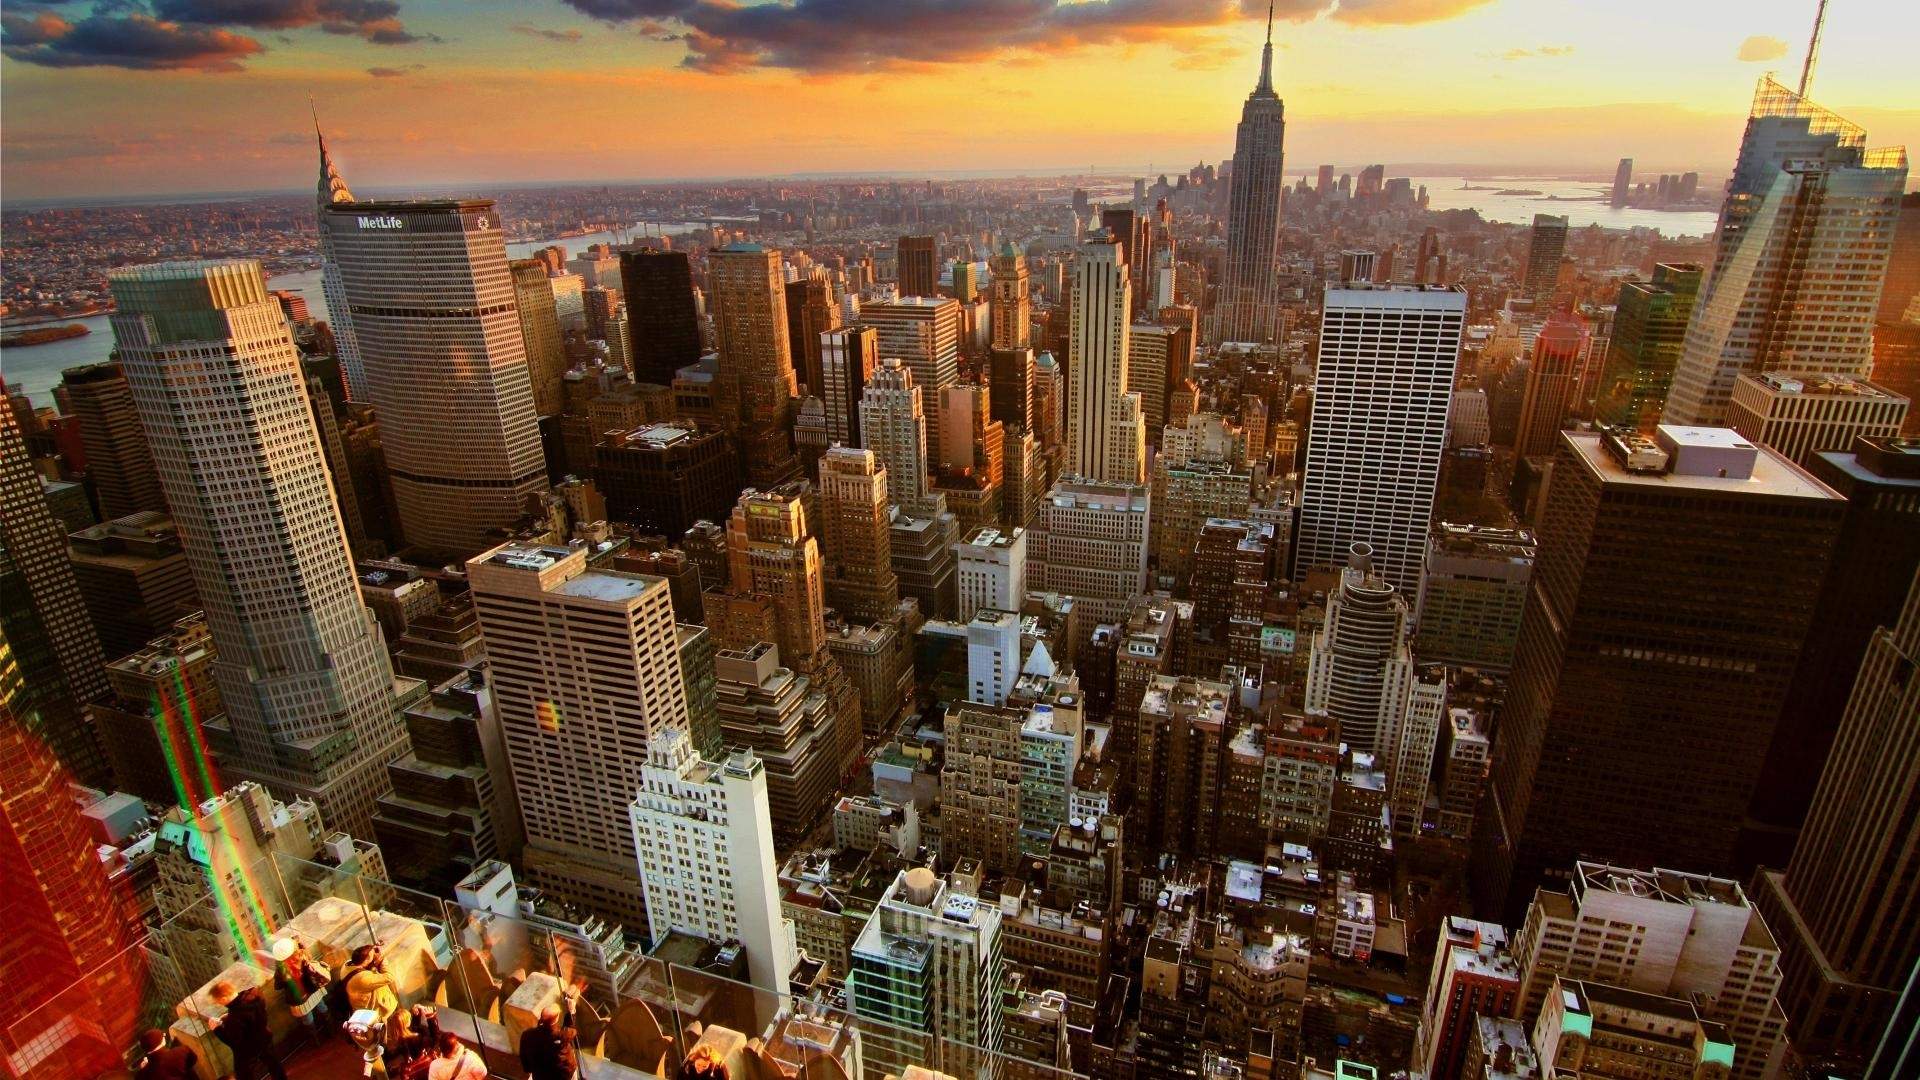 wallpapers new york sunset on city 1920x1080. - media file